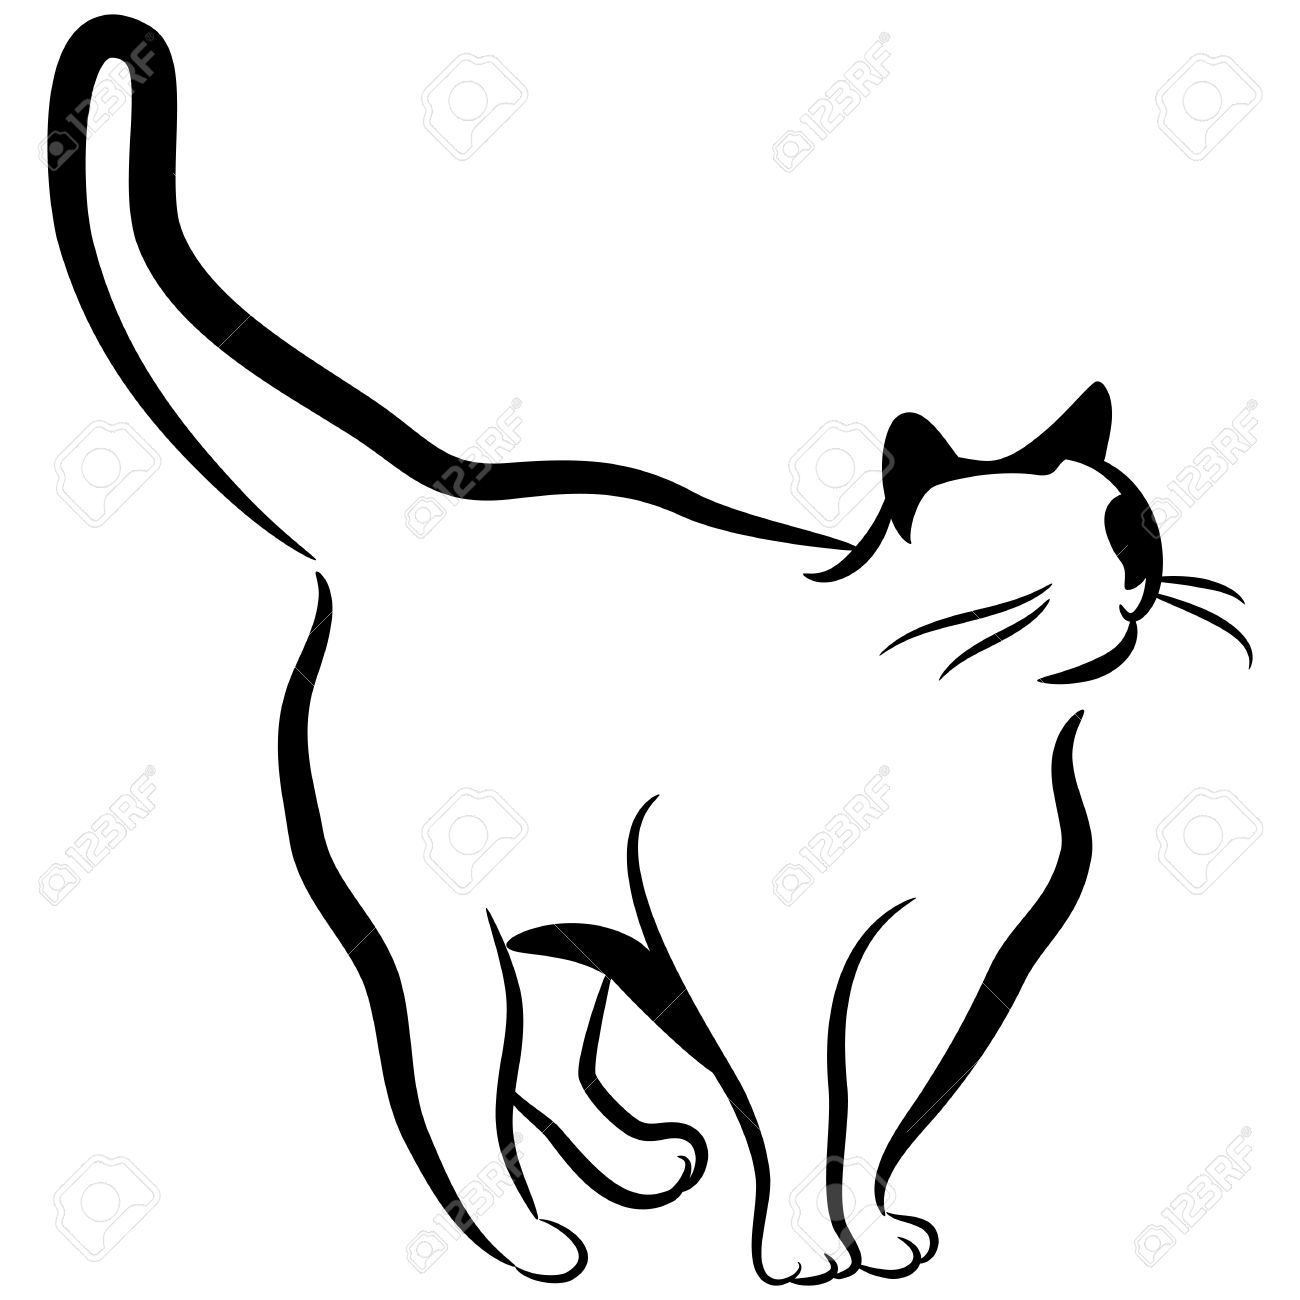 1300x1300 An Image Of An Abstract Elegant Cat. Royalty Free Cliparts